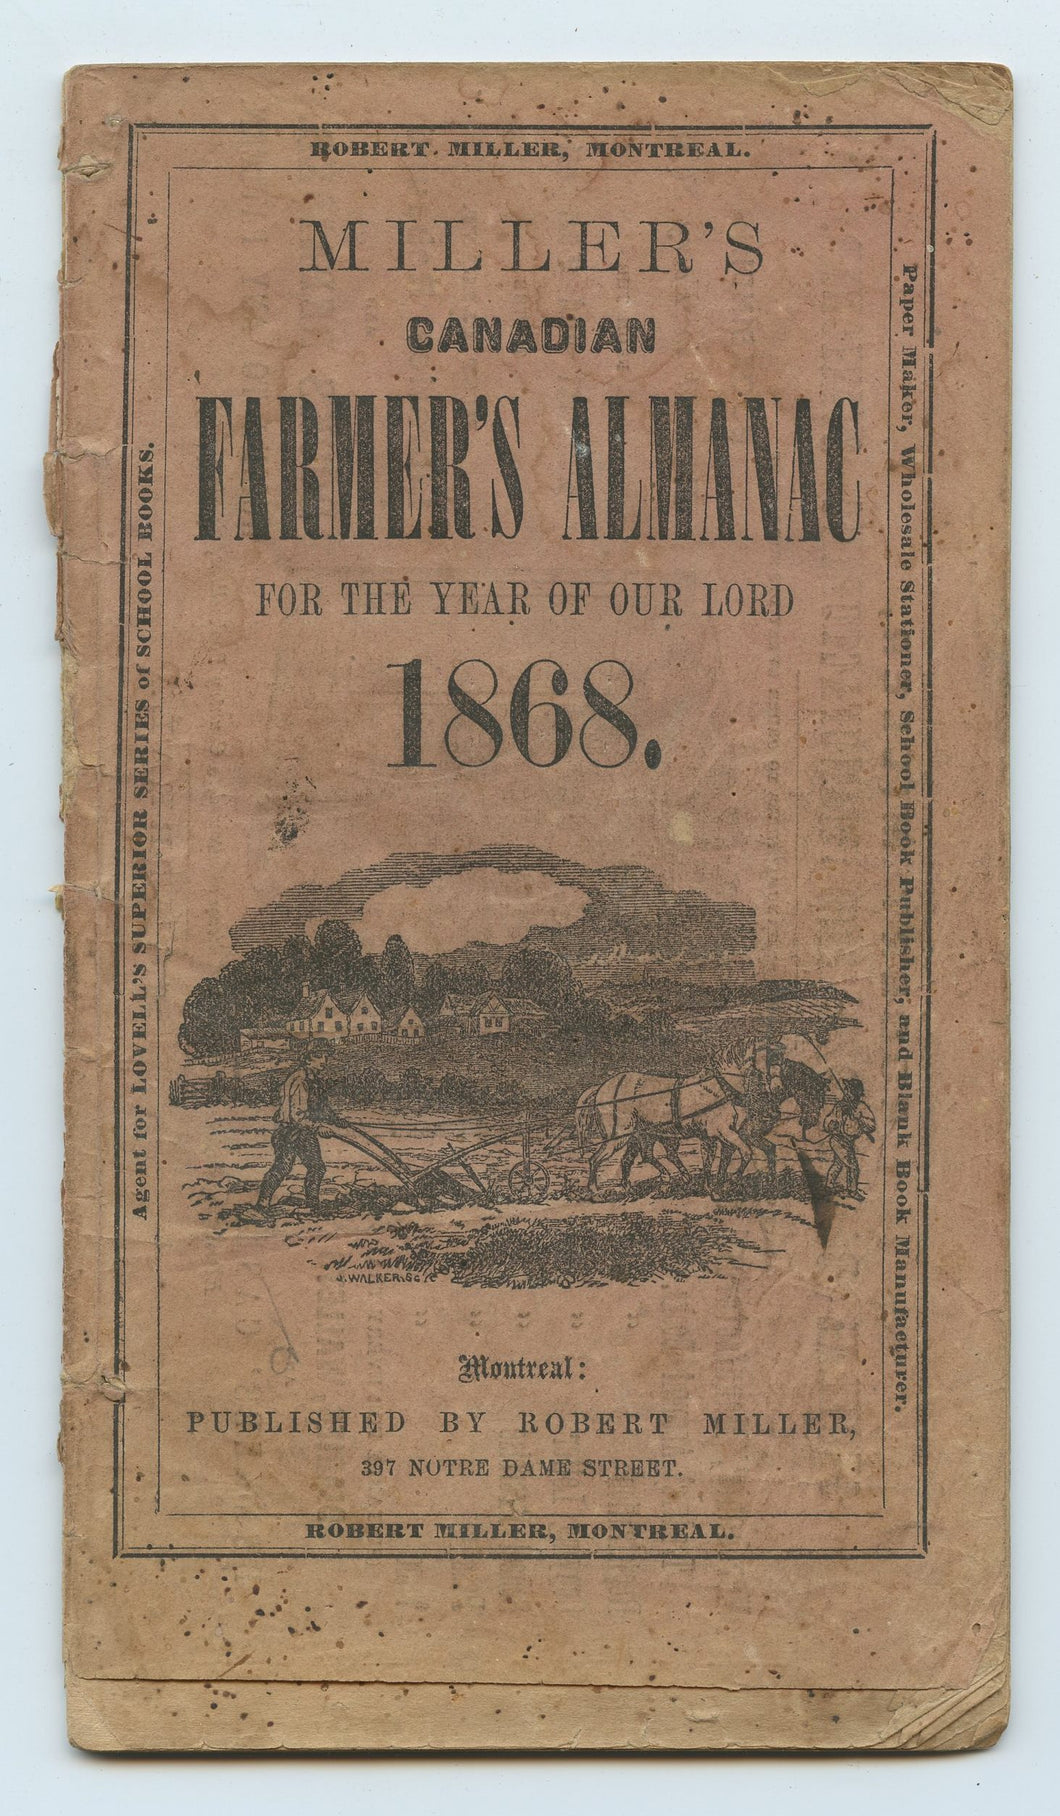 Miller's Canadian Farmer's Almanac for the Year of Our Lord 1868